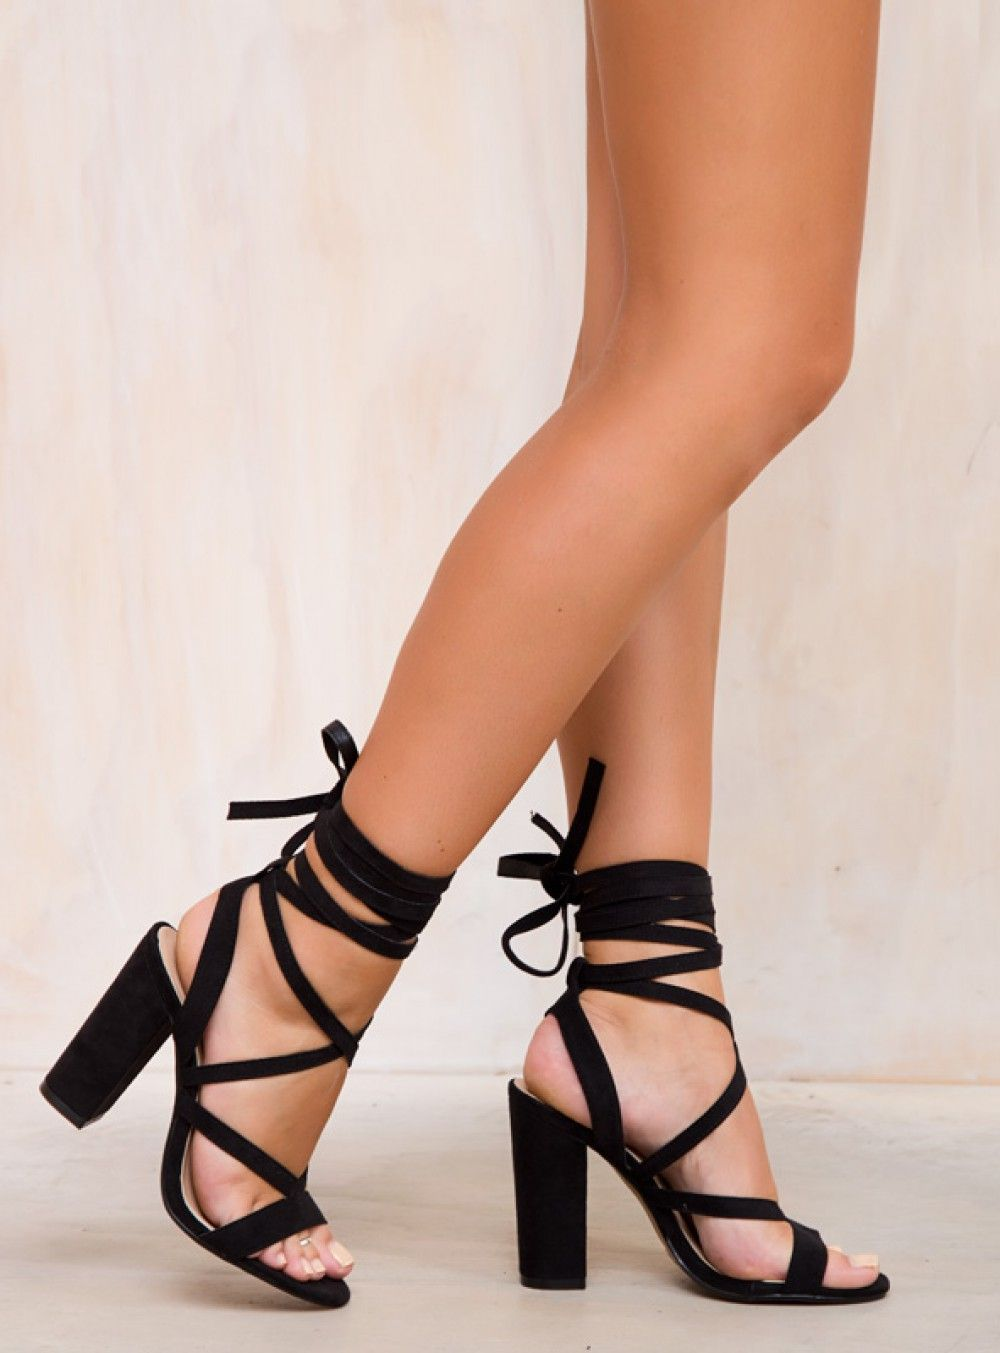 Billini+Black+Suede+Preen+Heels+-+Black+Preen+Heels+by+Billini  Suede+look+wrap+heels Strappy+design Ties+around+ankle Thick+block+heel  Man+made+material AUS ...